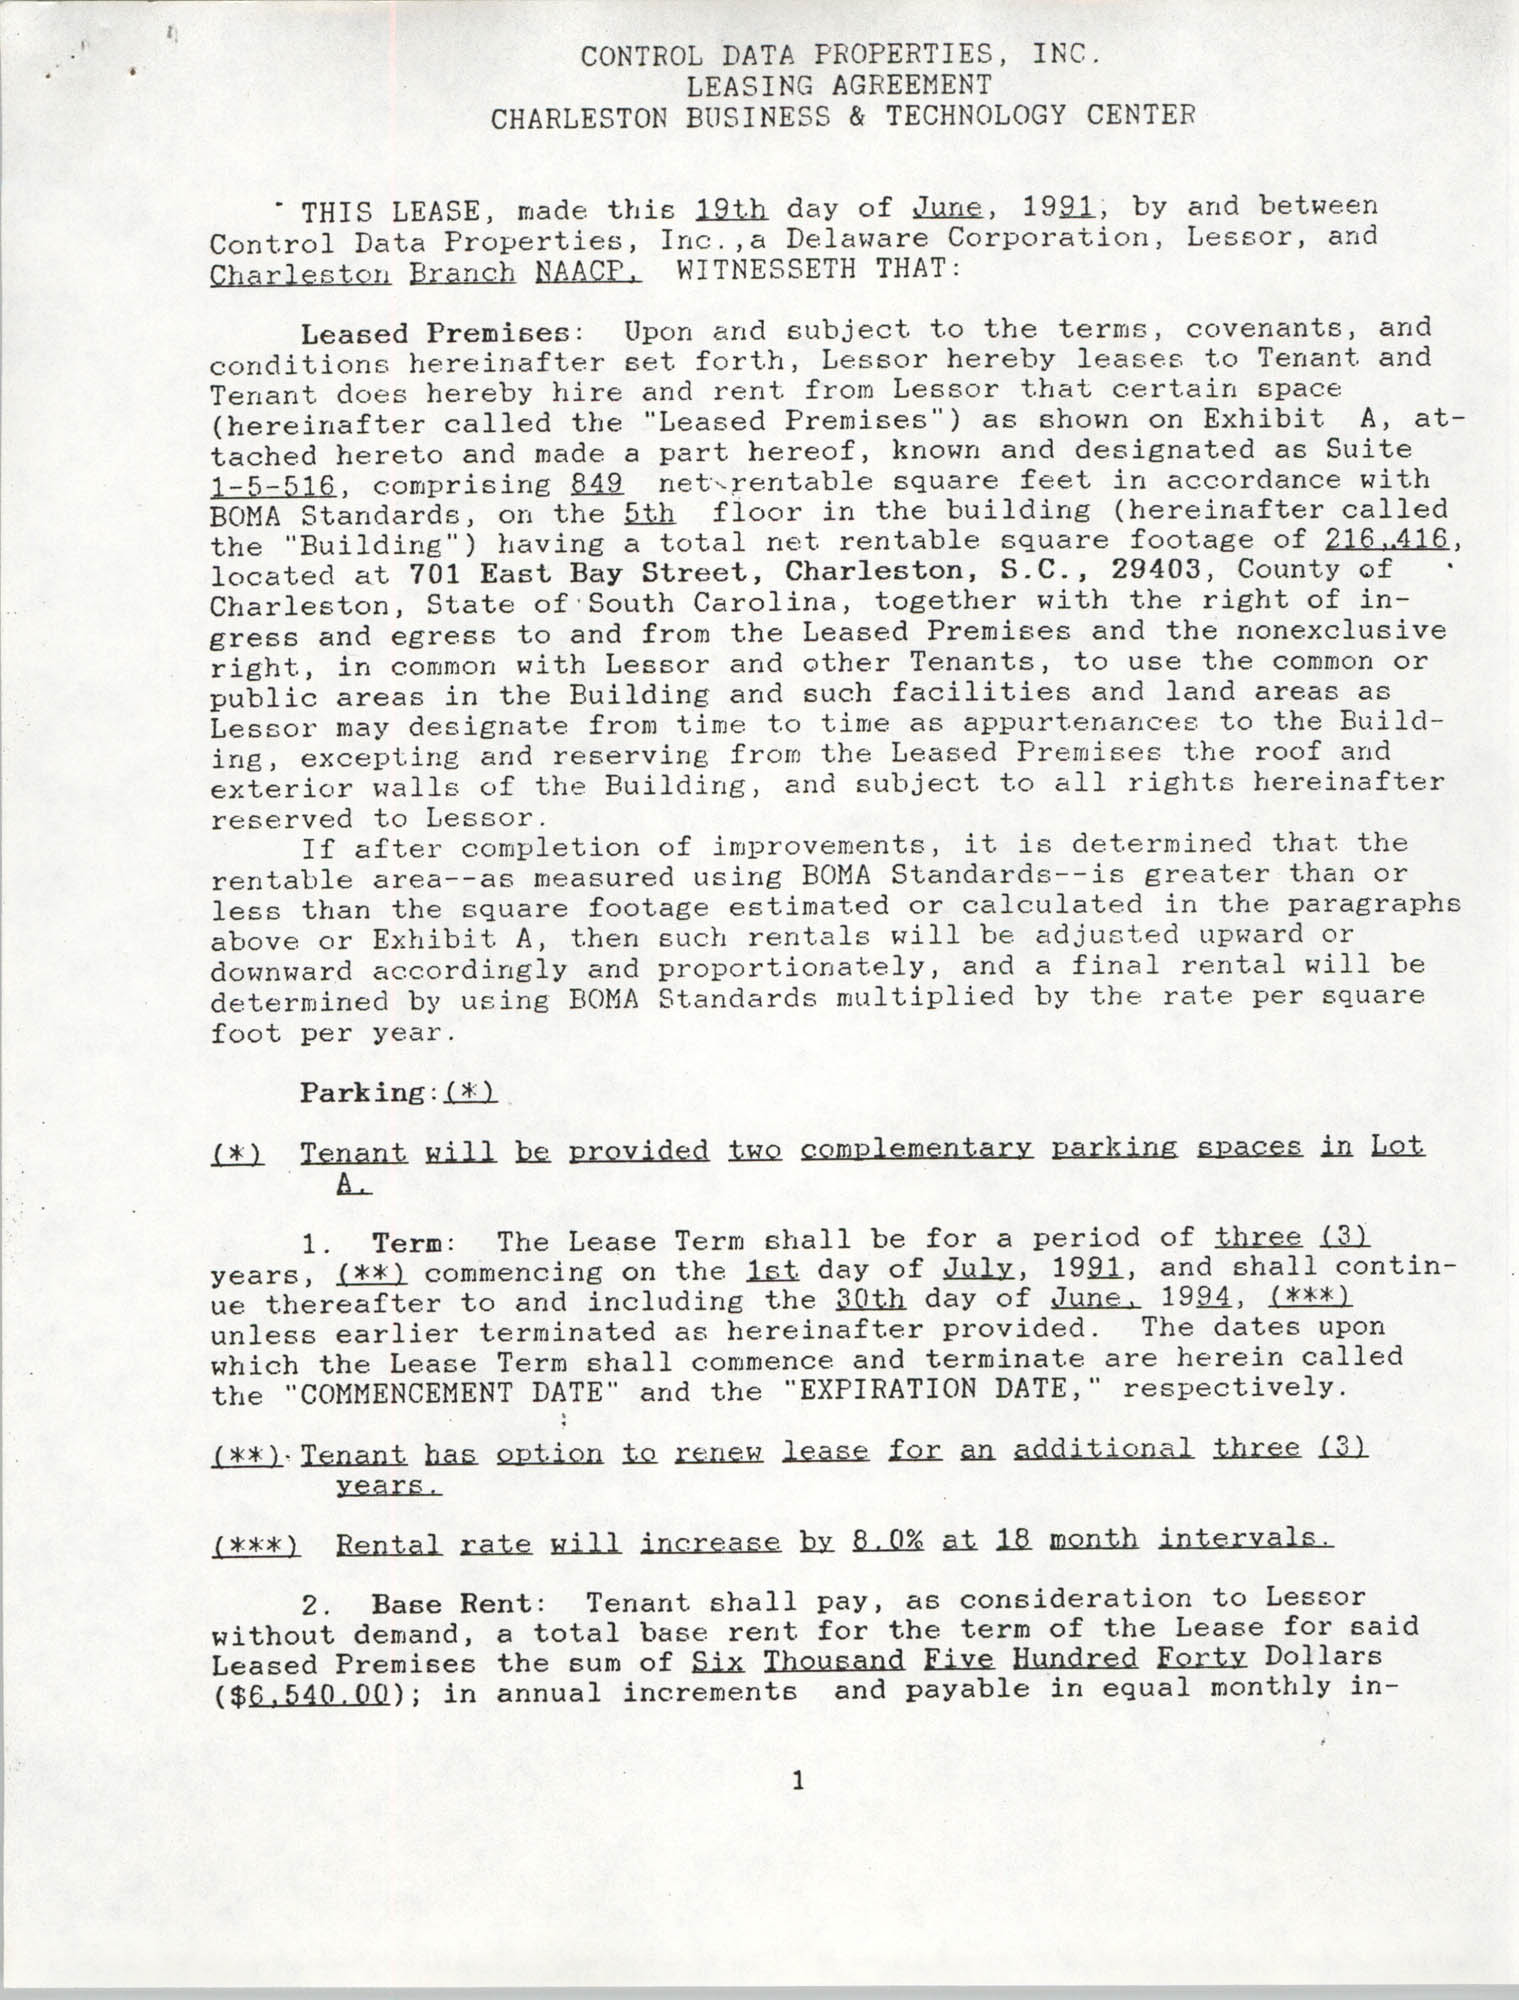 Charleston Branch of the NAACP Leasing Agreement, June 1991 to June 1994